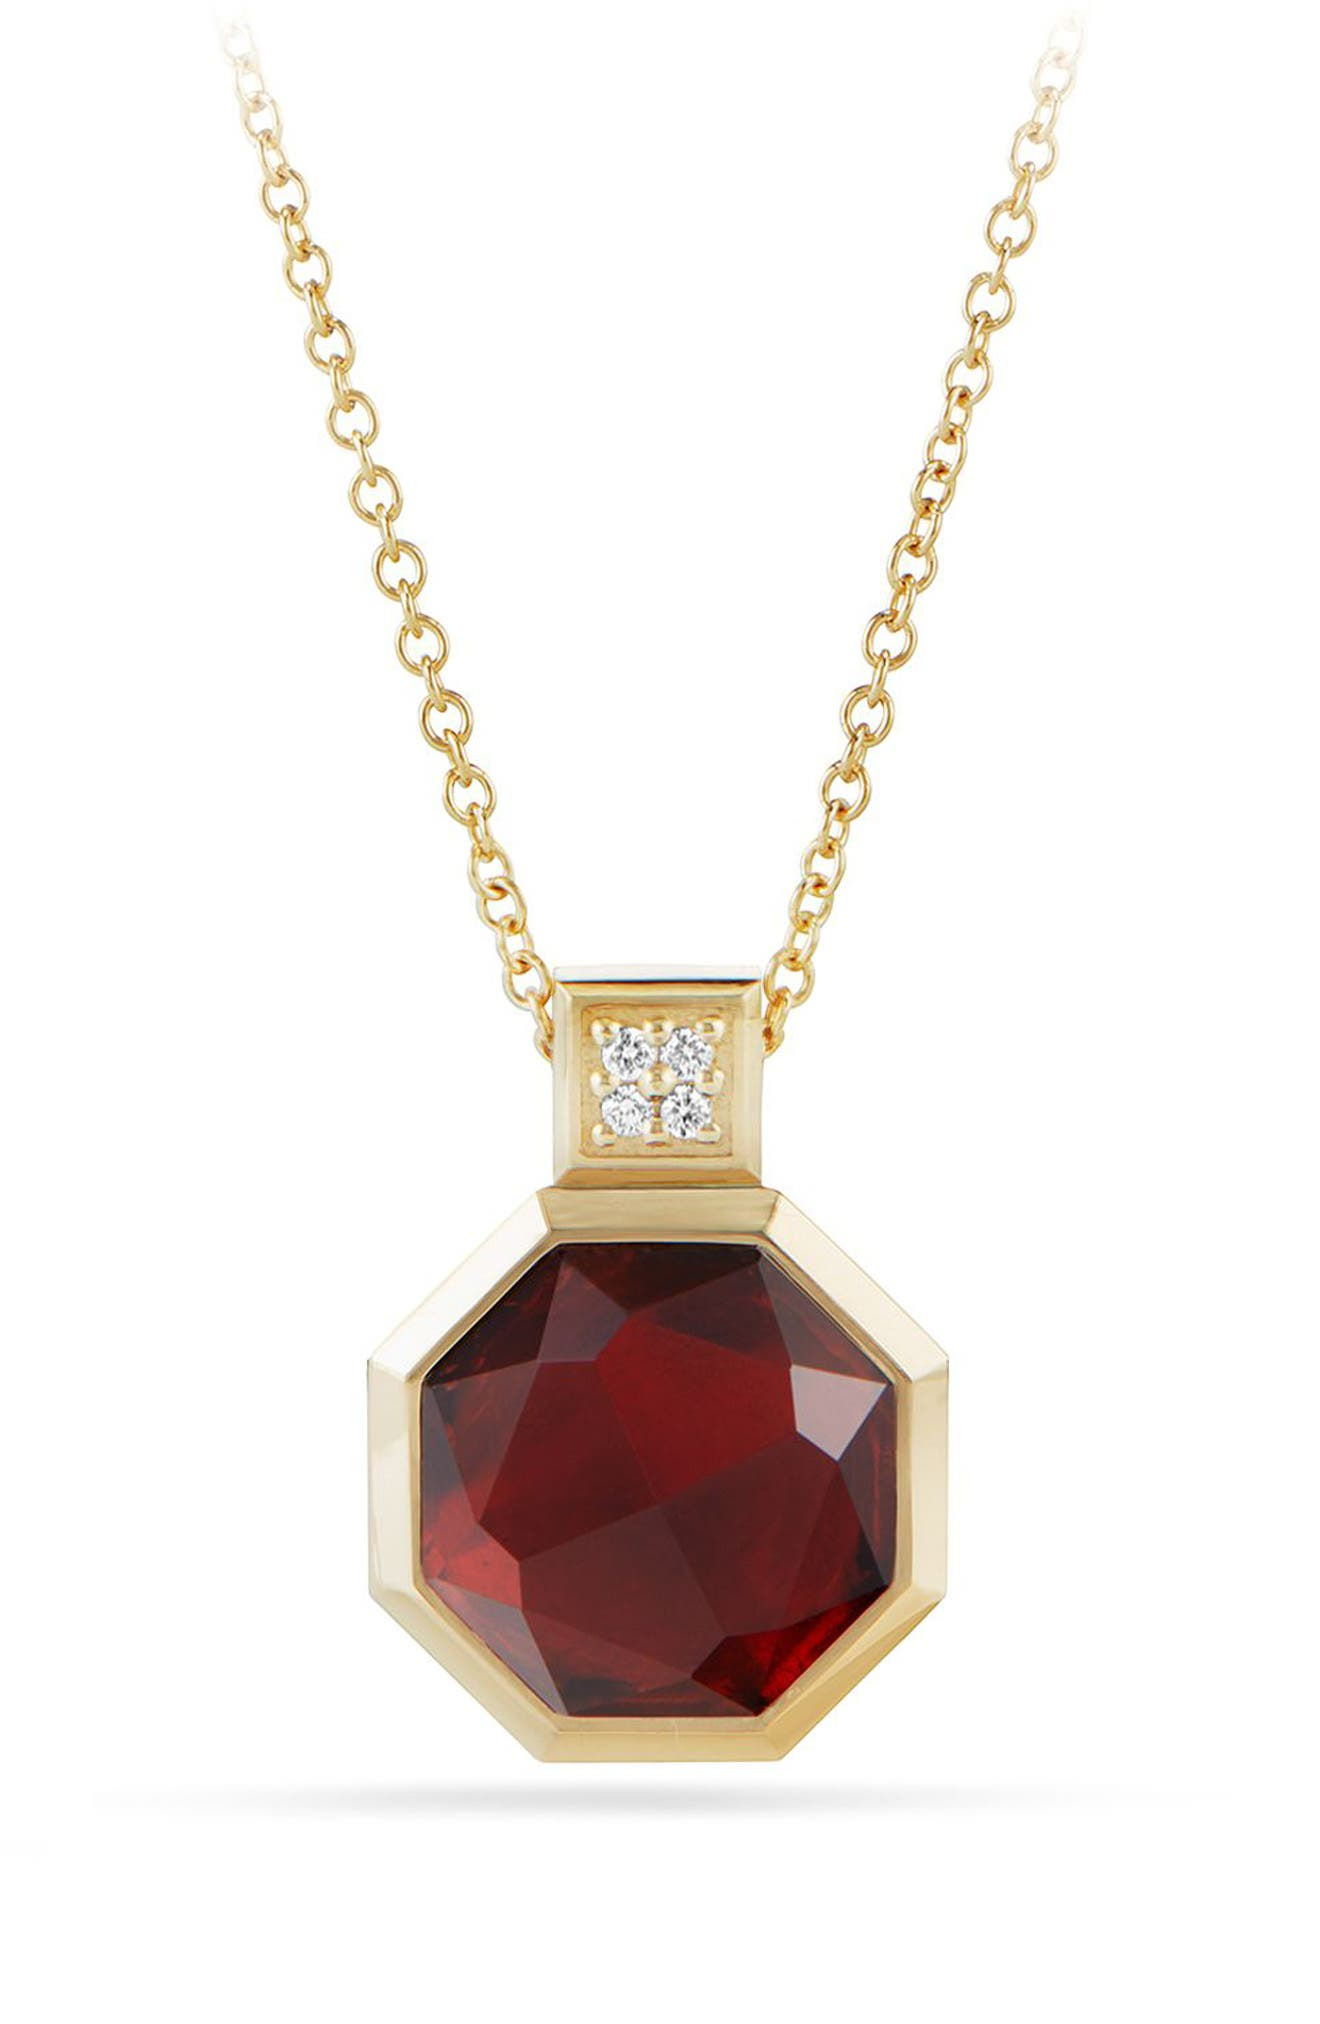 Guilin Octagon Pendant Necklace,                         Main,                         color, YELLOW GOLD/ DIAMOND